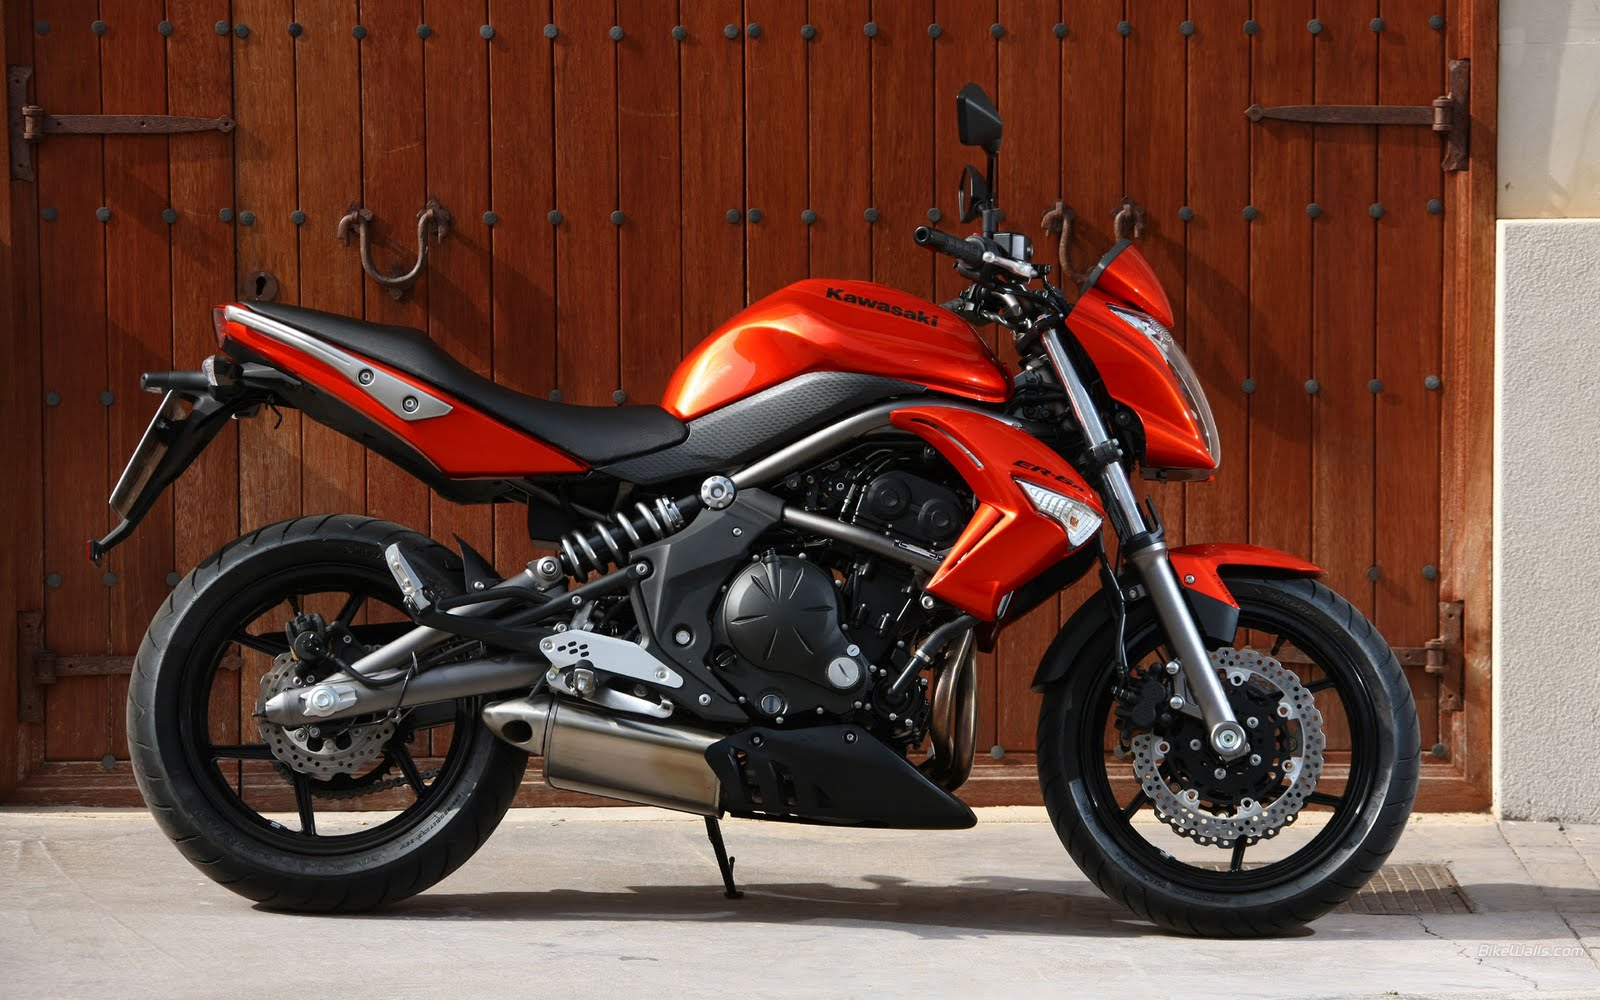 Kawasaki Releases New Supercharged Z H2 Naked Sportbike